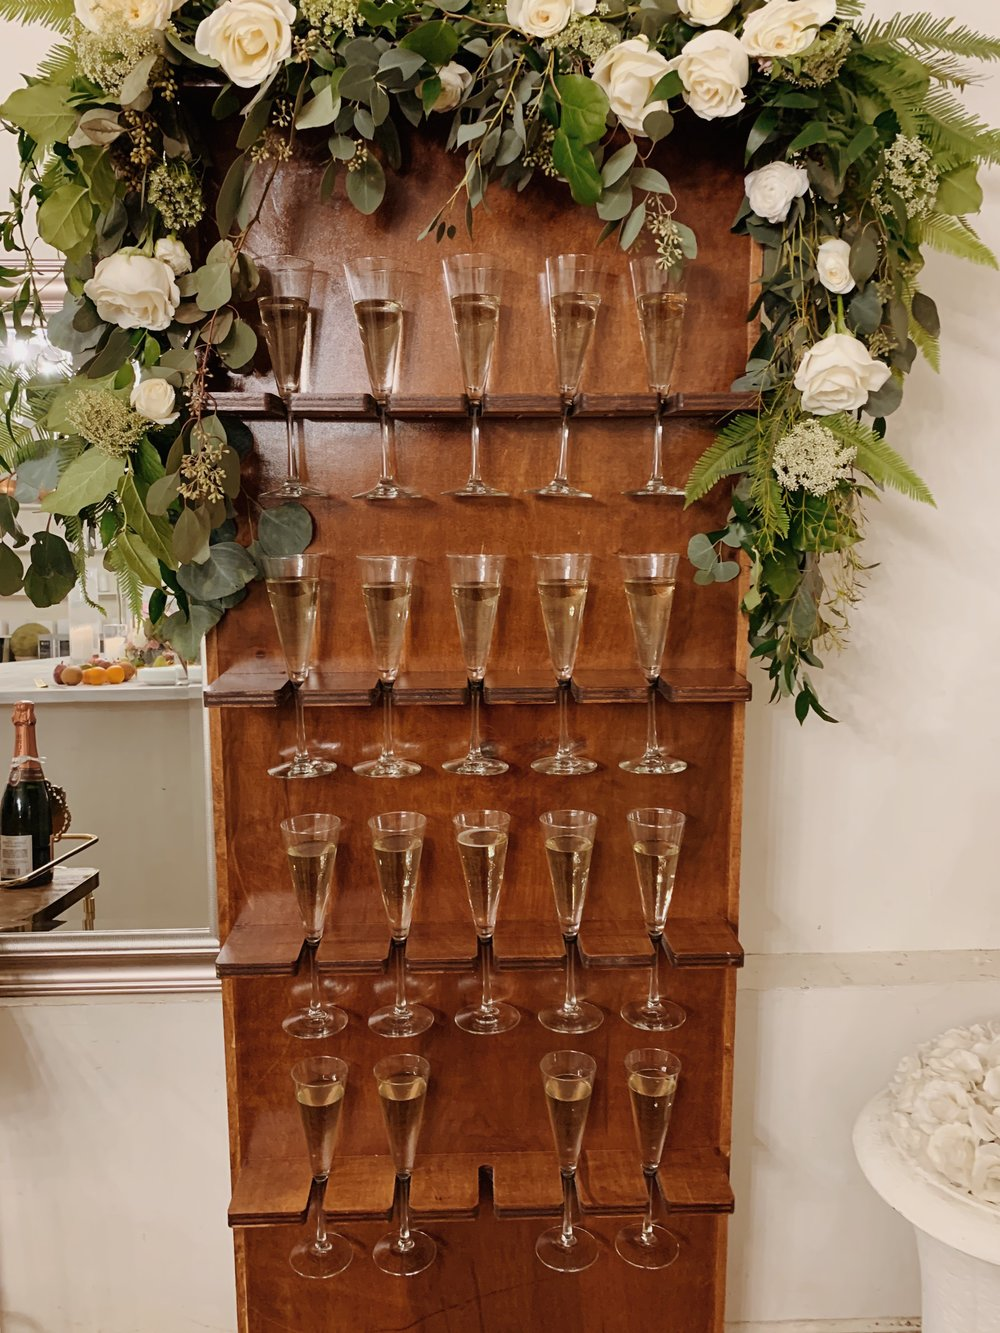 How adorable is this champagne flute wall, The Bubbly Wall, by our friends over at The Bubbly Truck?!